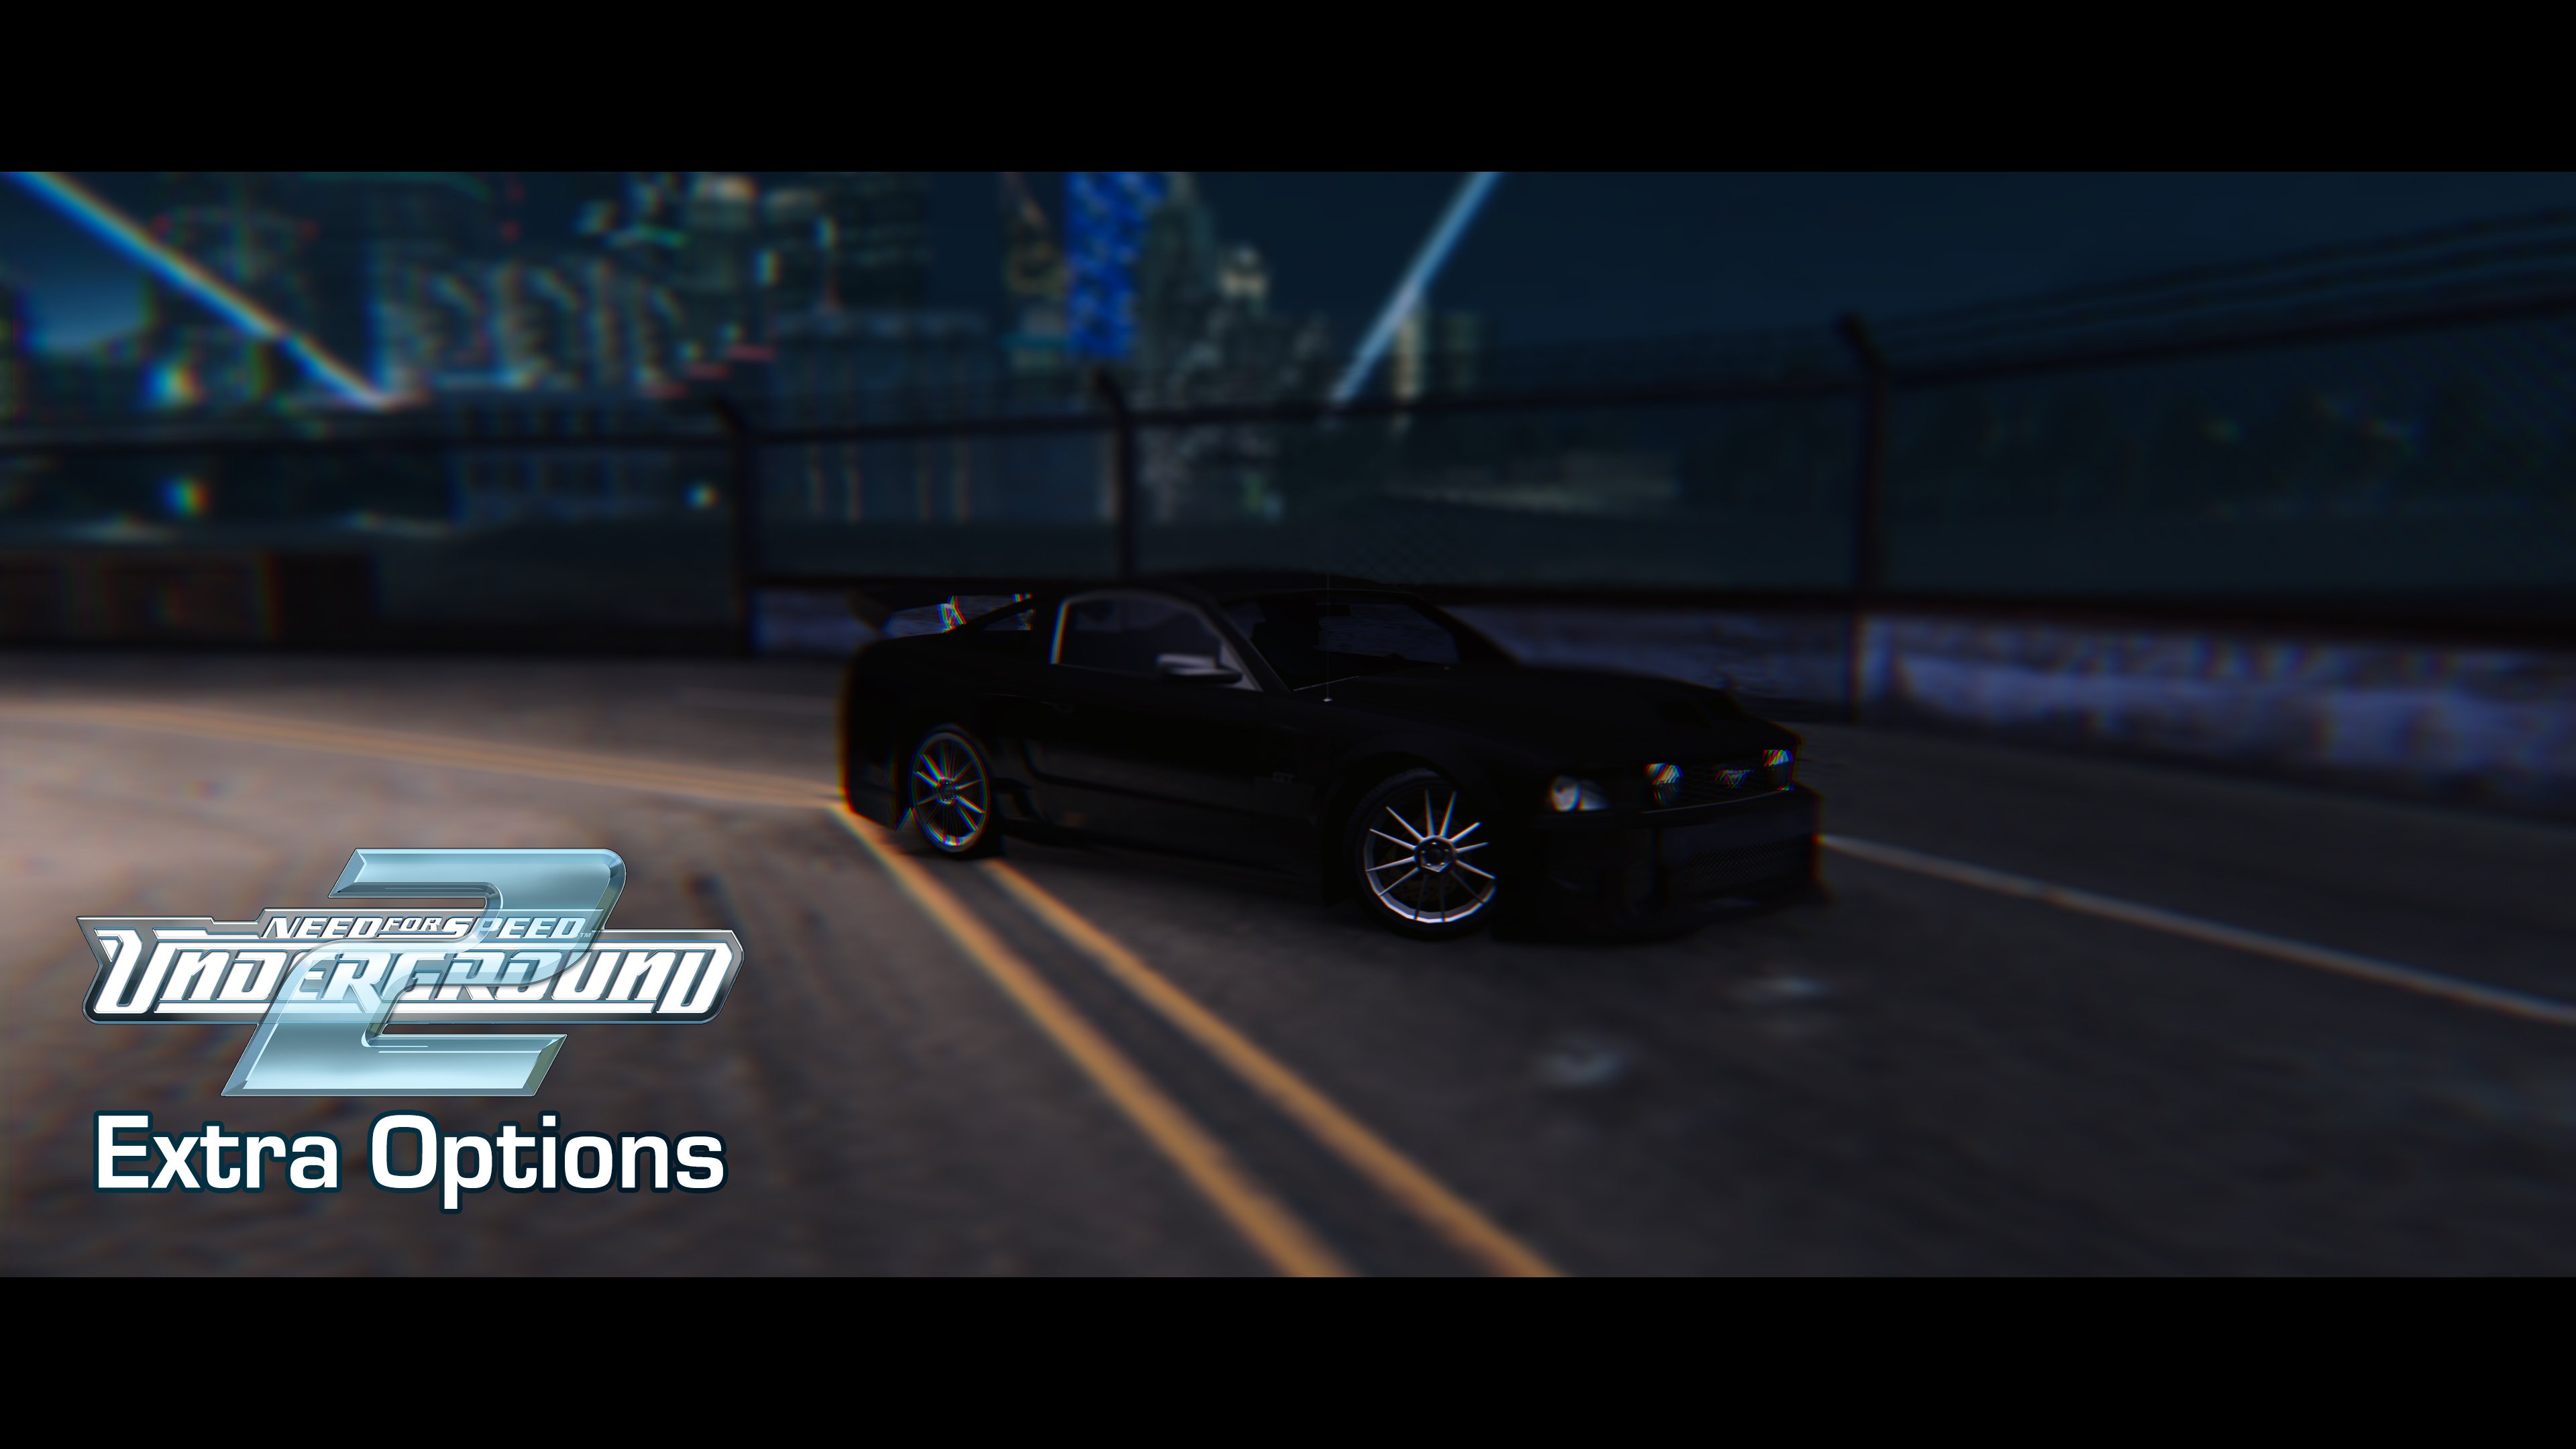 NFSMods - NFSU2 Extra Options